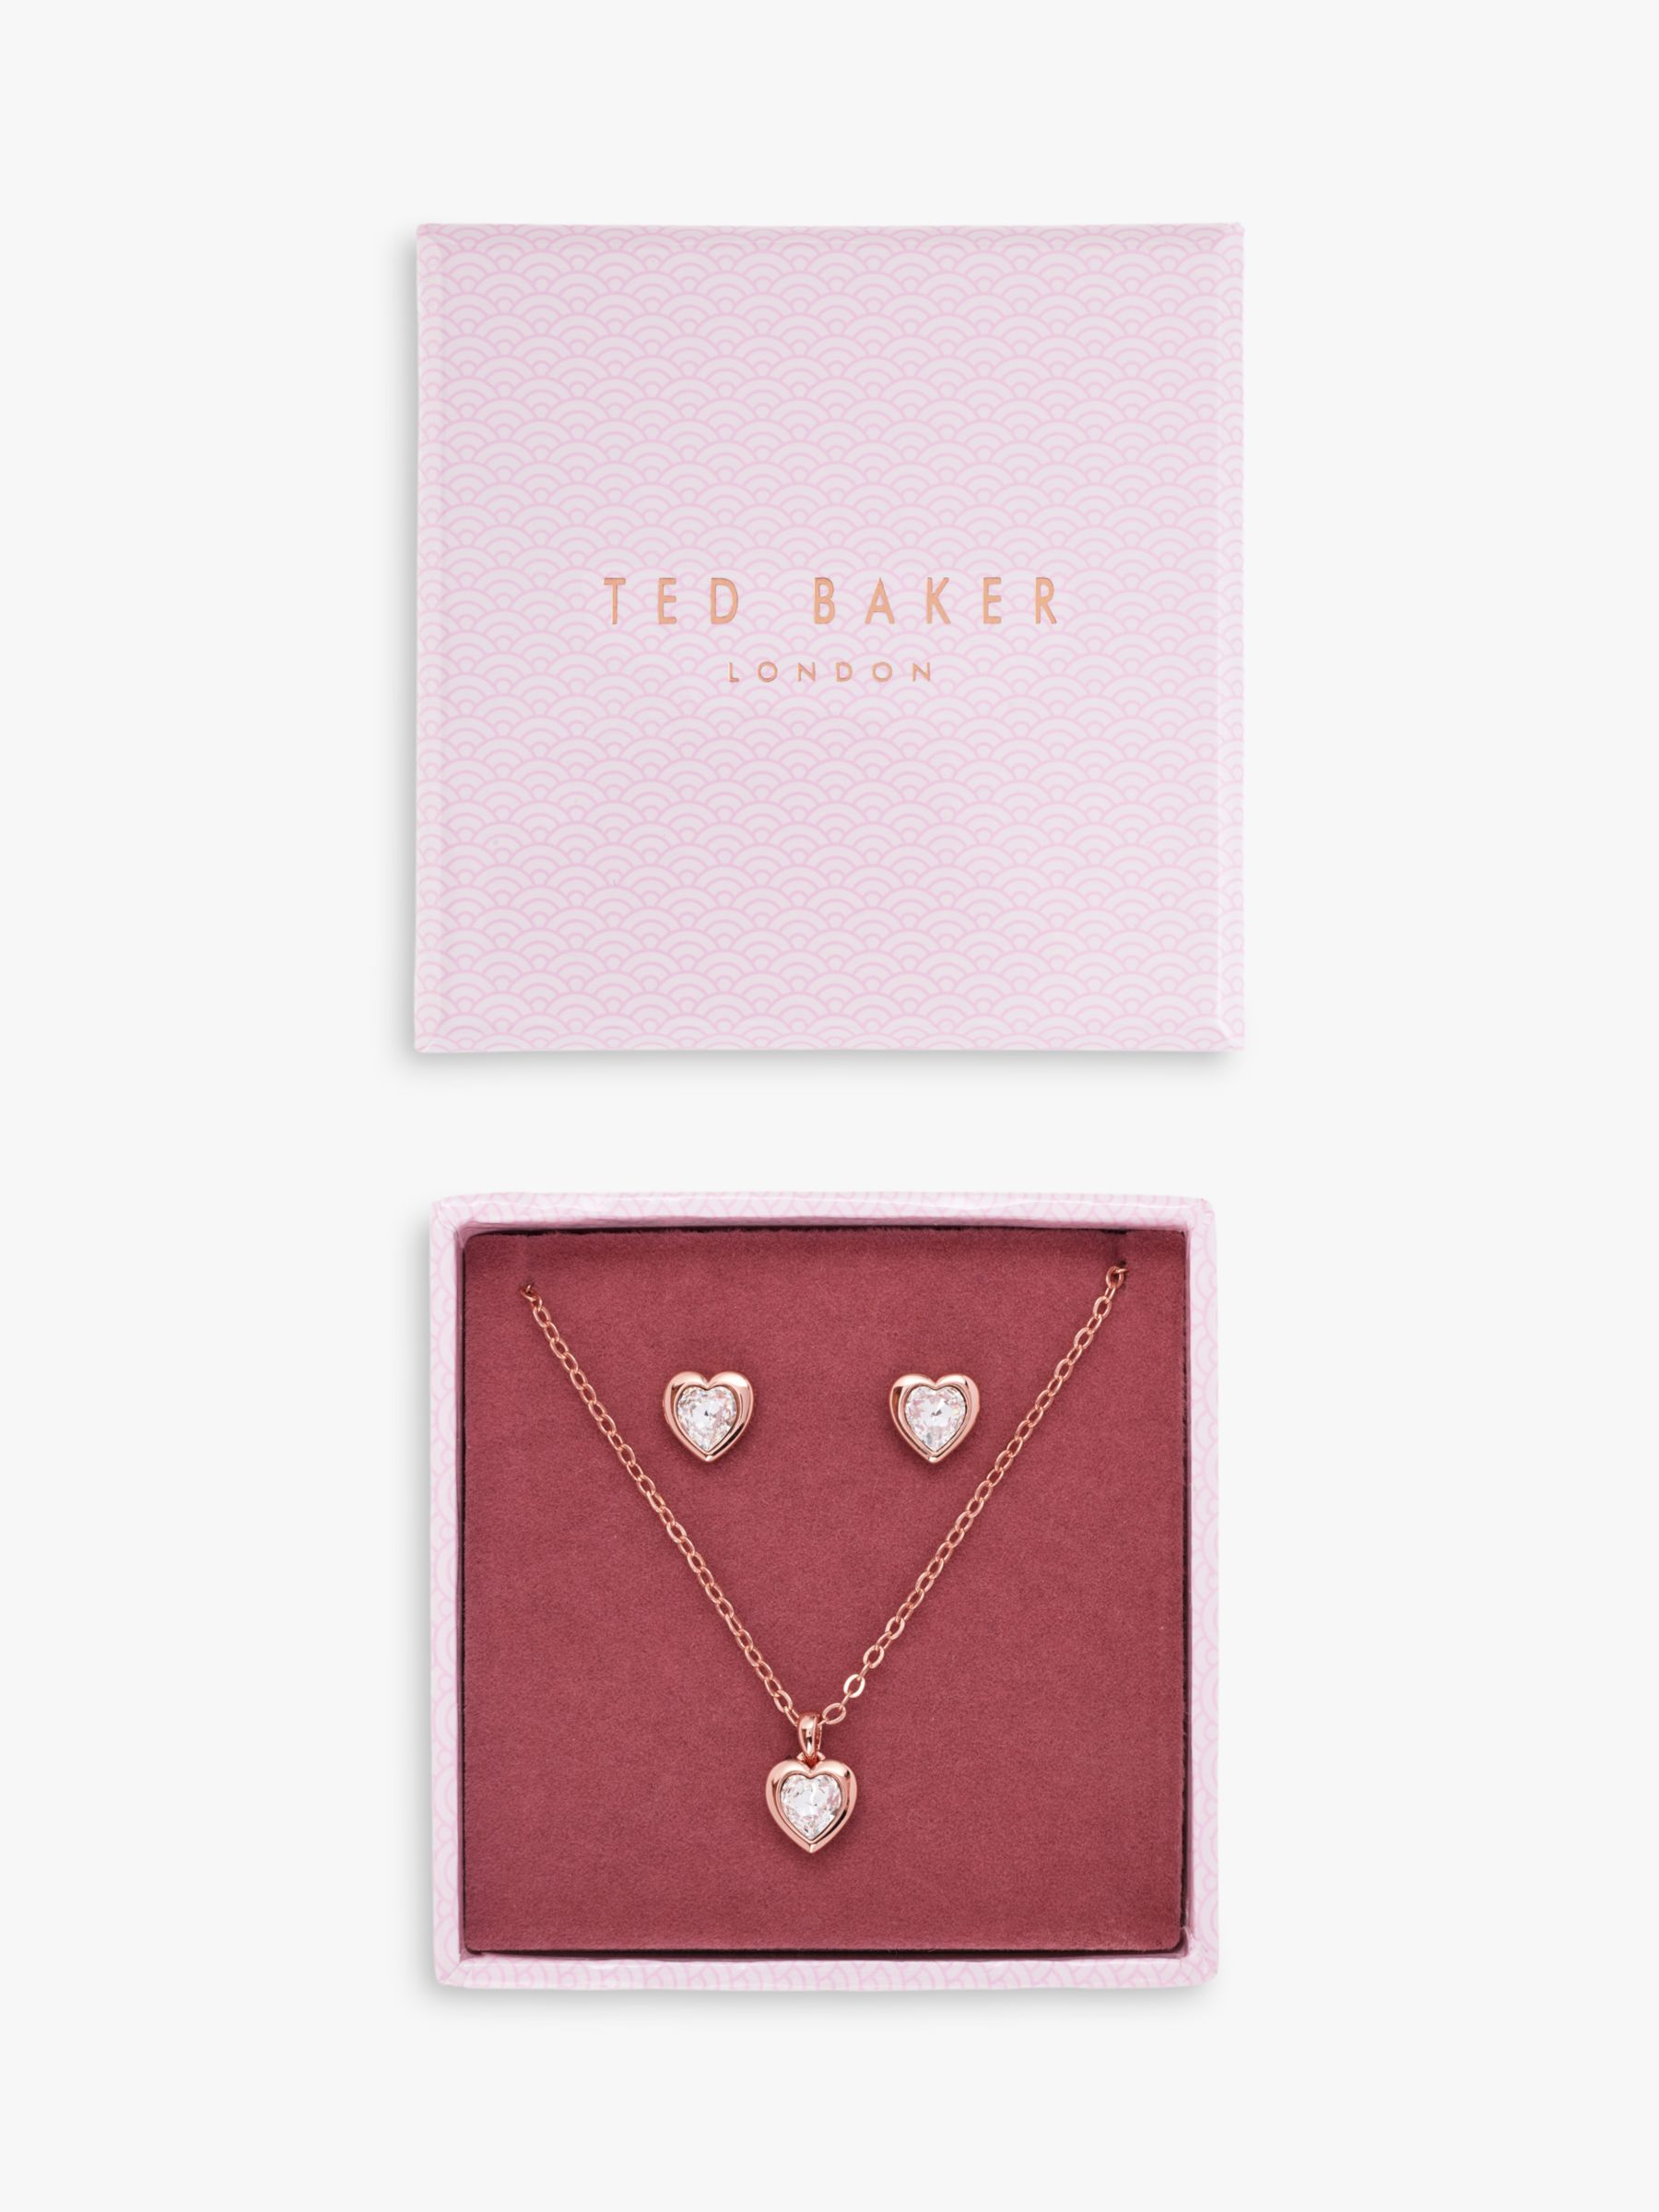 Ted Baker Swarovski Crystal Heart Pendant Necklace And Stud Earrings Jewellery Gift Set At John Lewis Partners